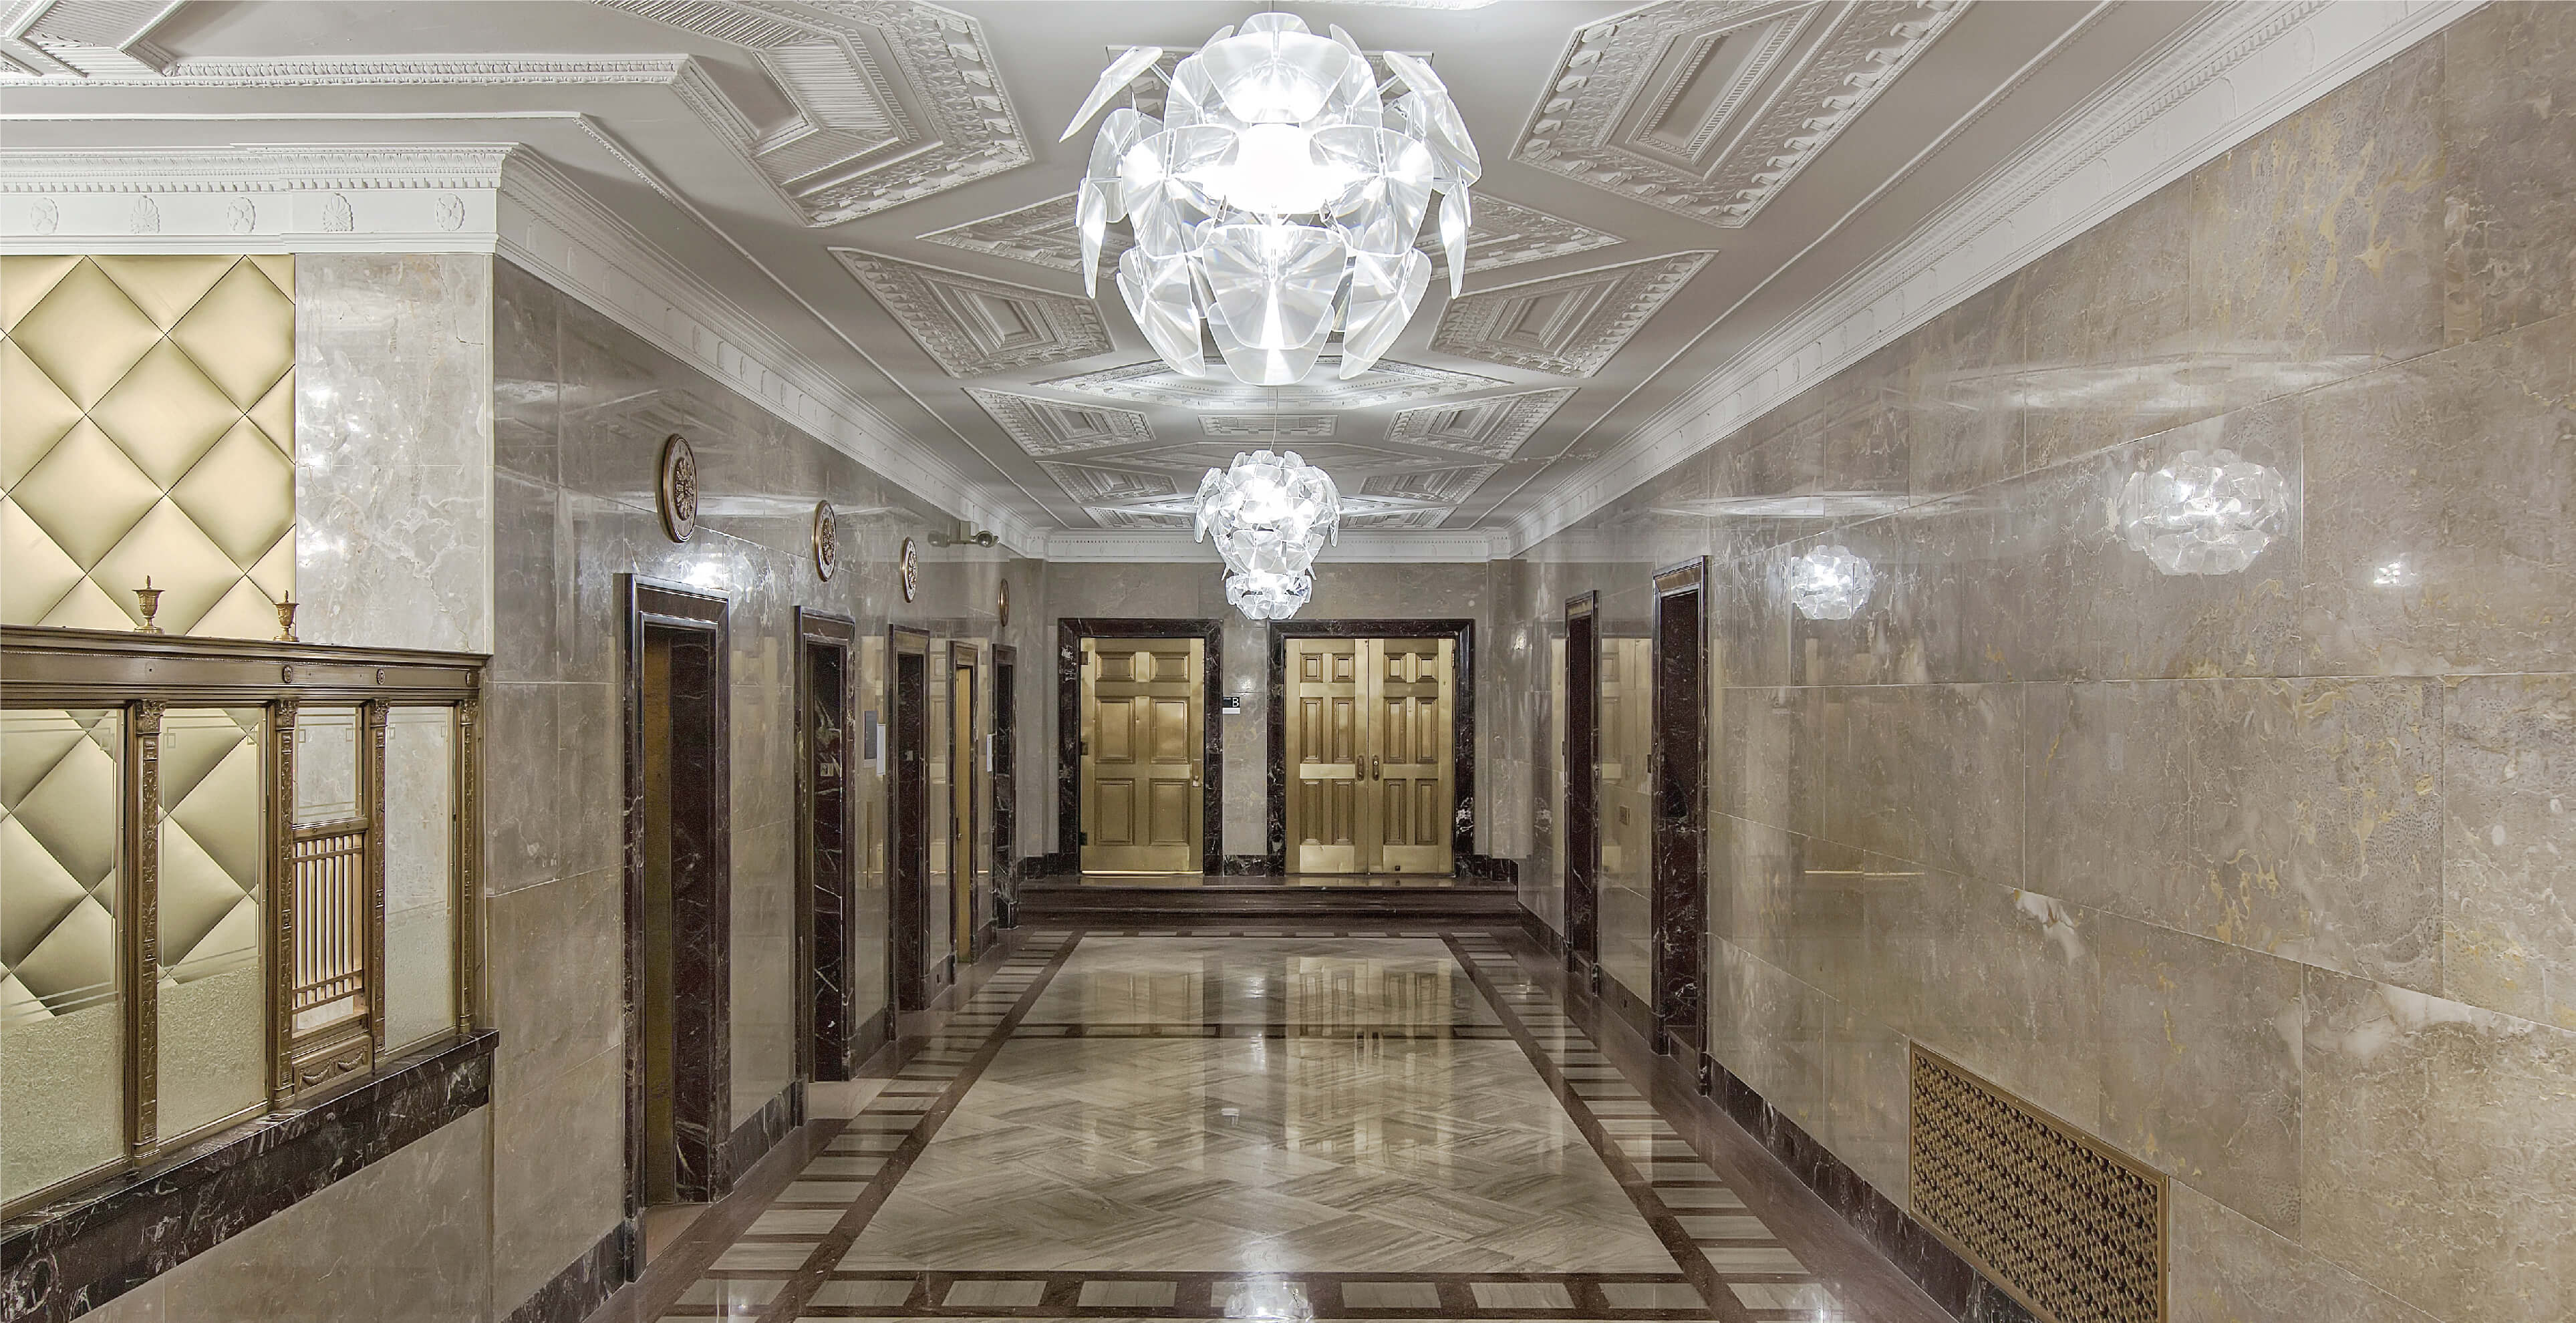 windermere building lobby image 2